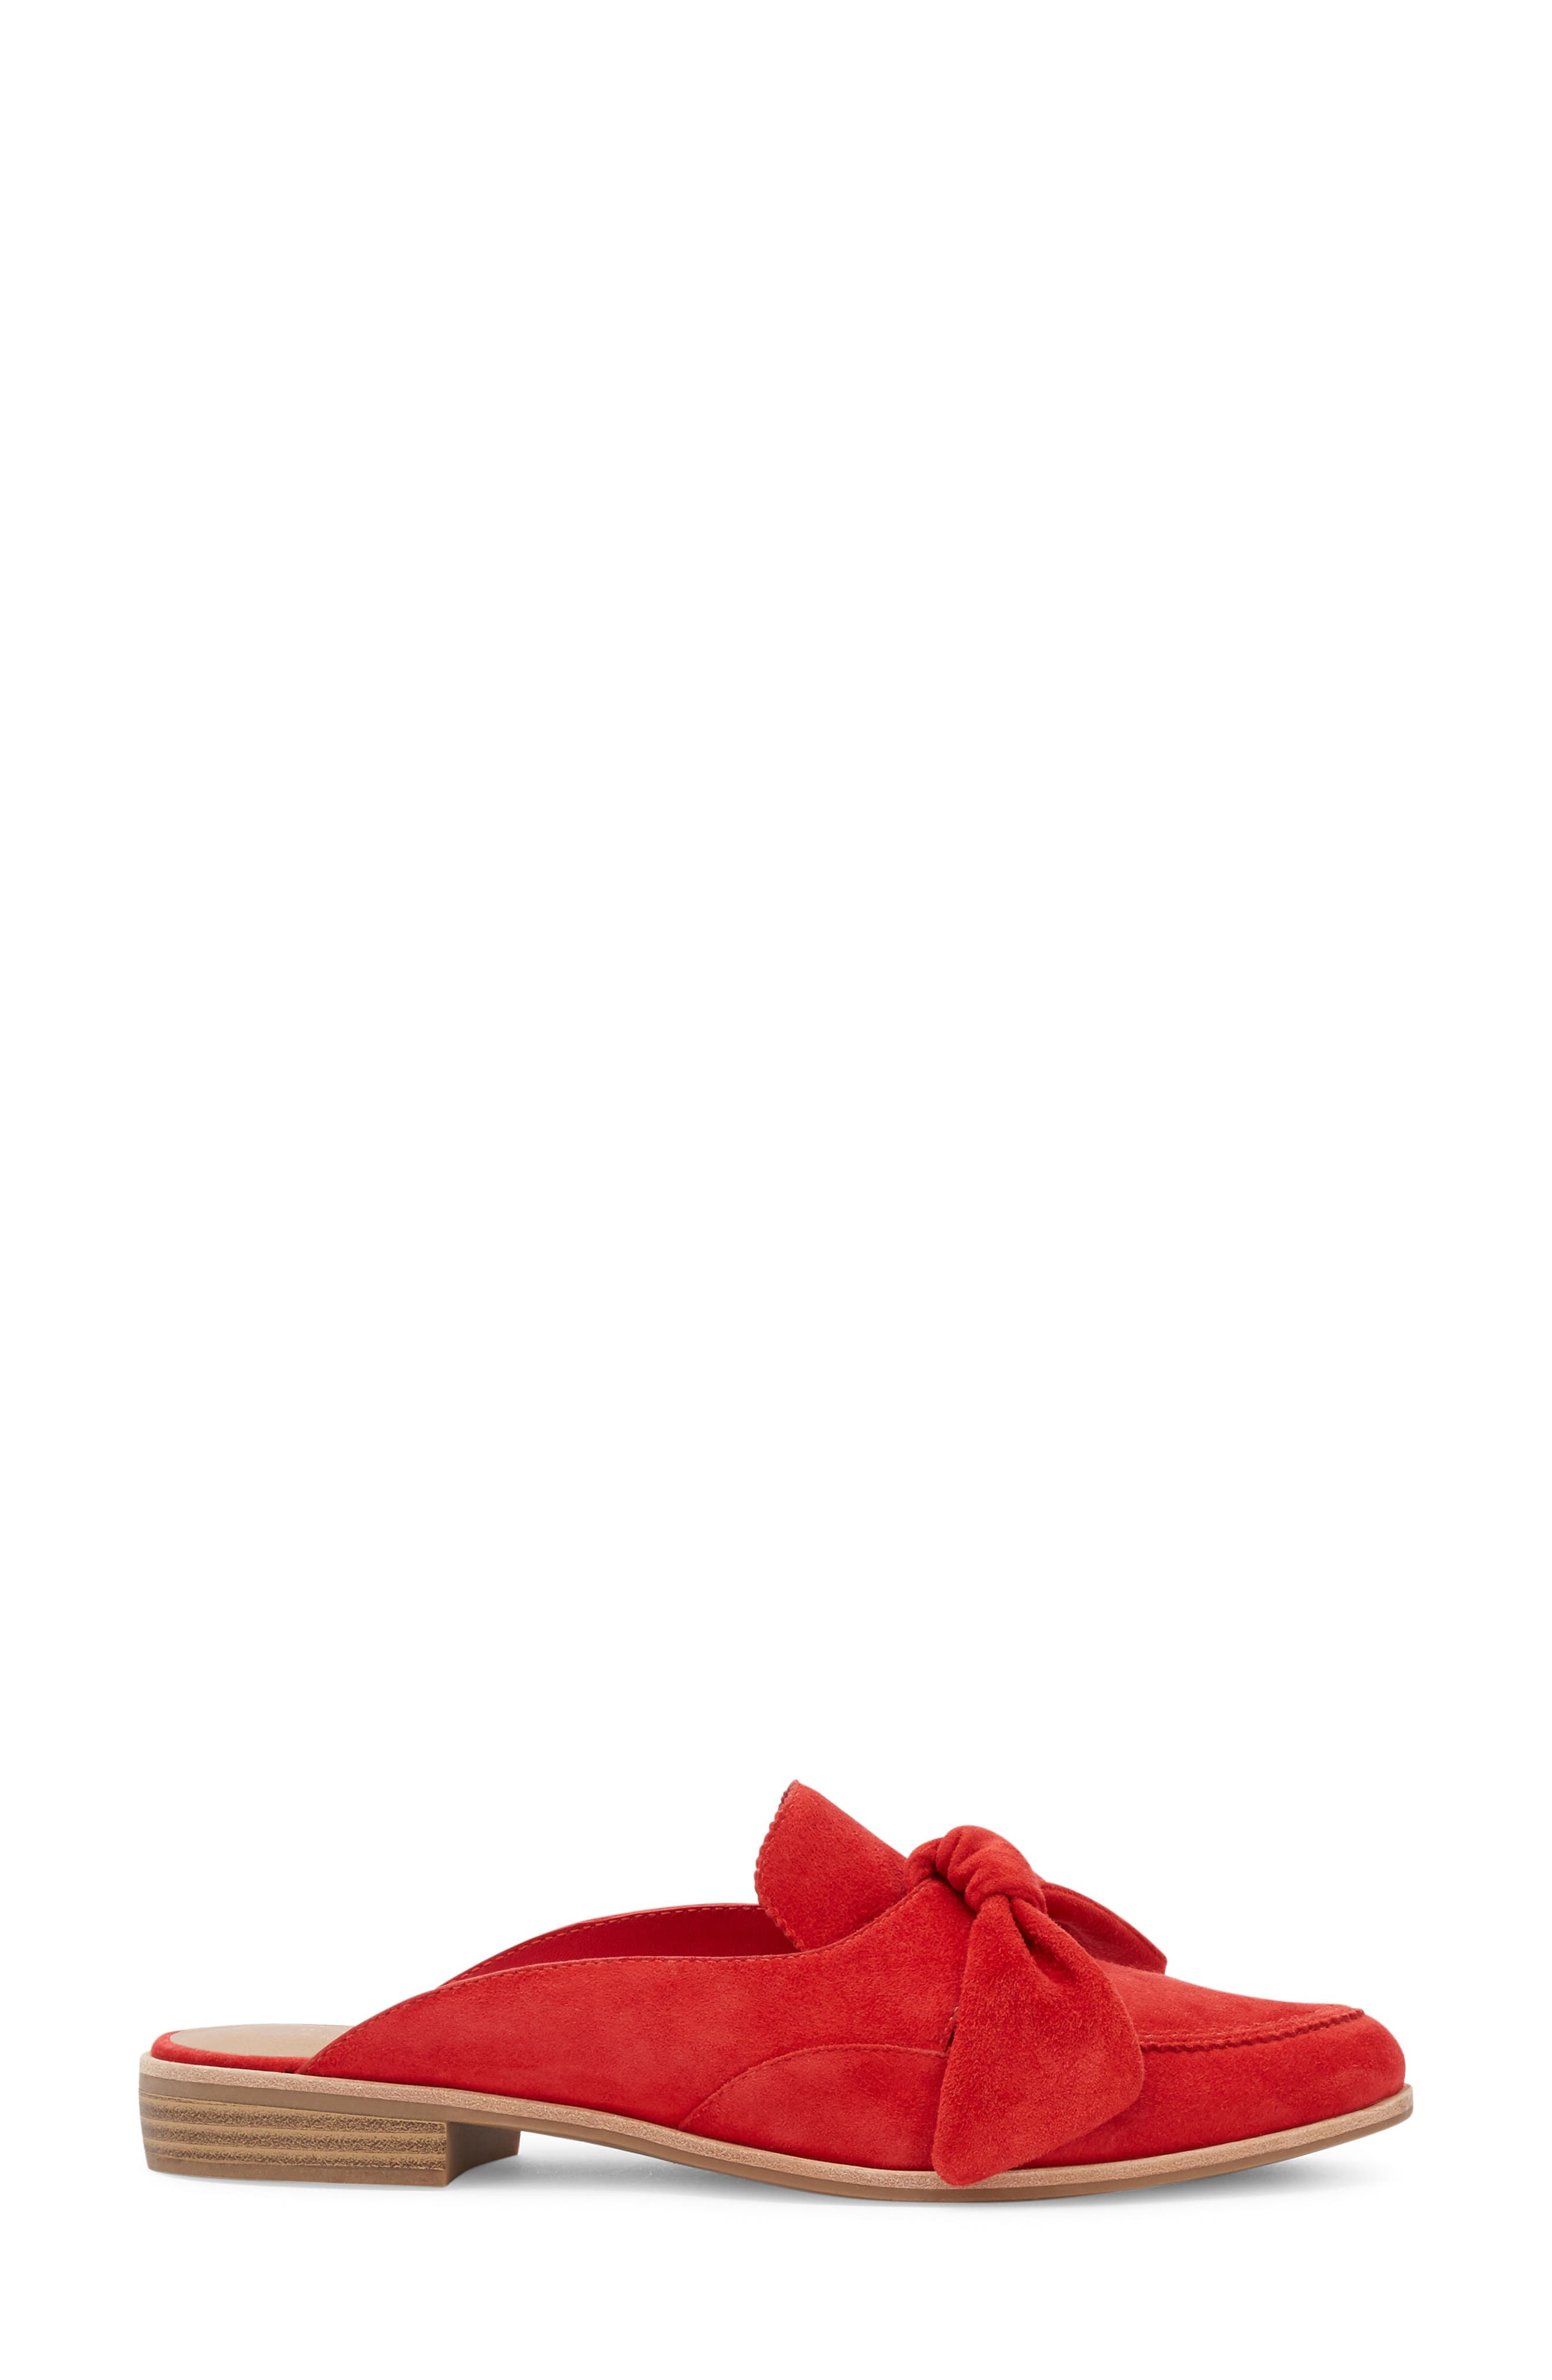 Ebbie Bow Mule,                             Alternate thumbnail 3, color,                             Red Suede